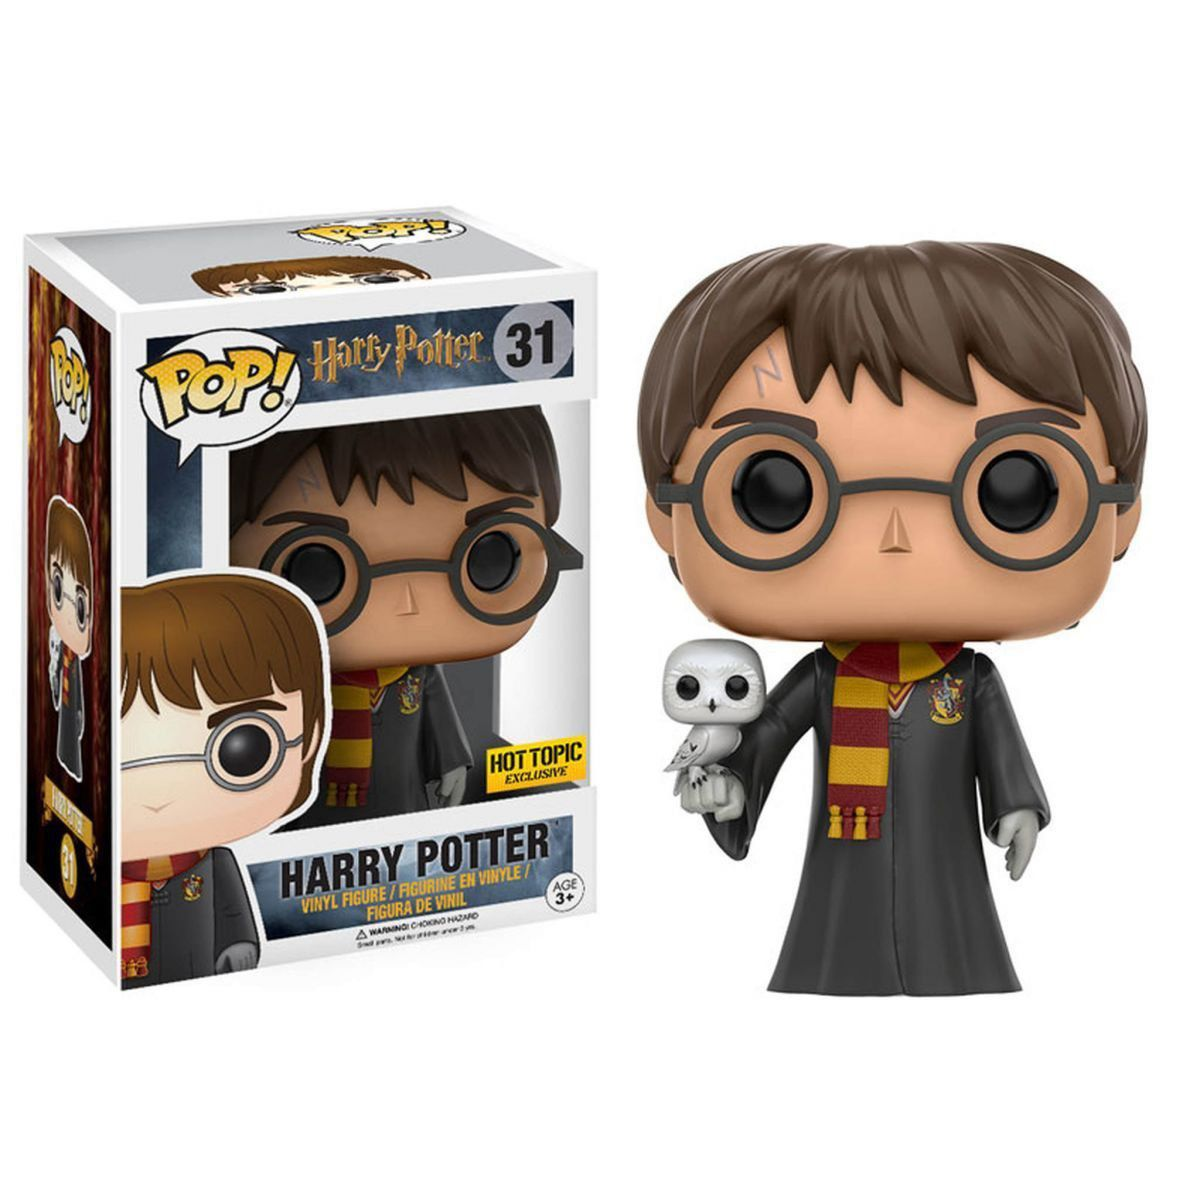 Funko Pop! Harry Potter com Coruja (with Hedwig): Harry Potter Exclusivo Hot Topic #31 - Funko